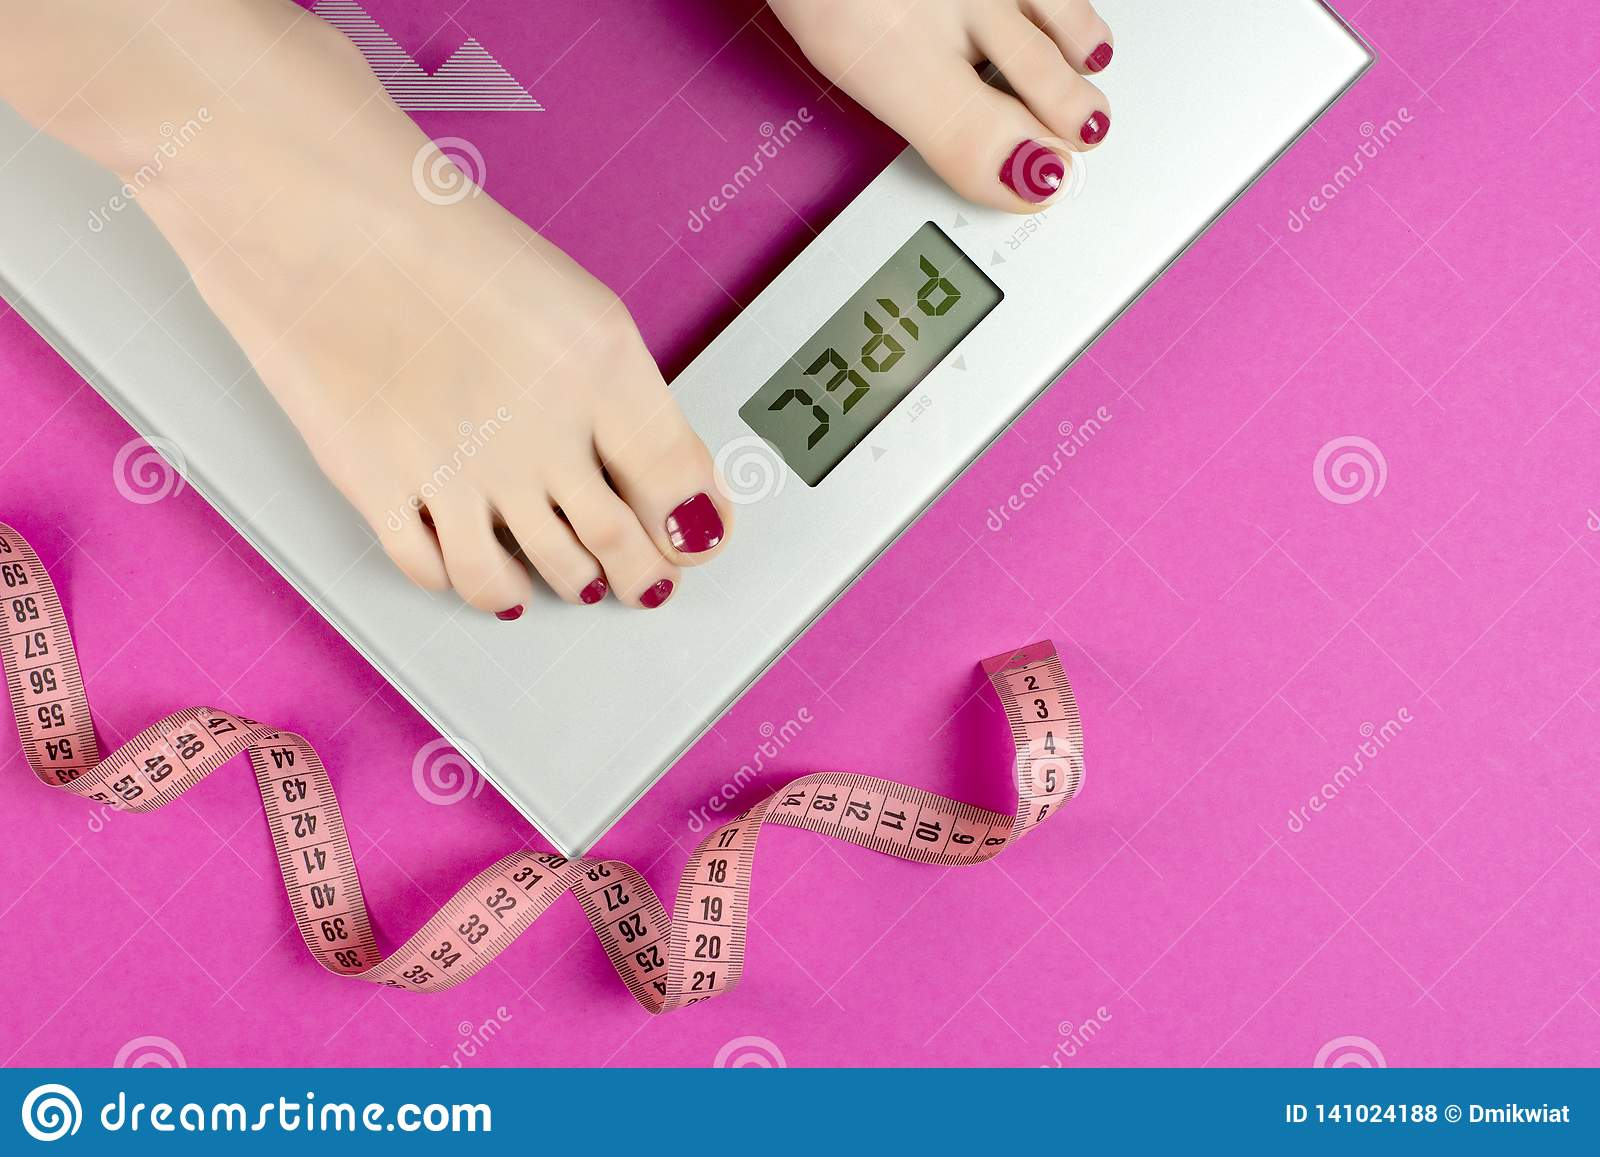 Measure tape and scales on a pink background with the words pipec. Diet plan and workout women before the summer season